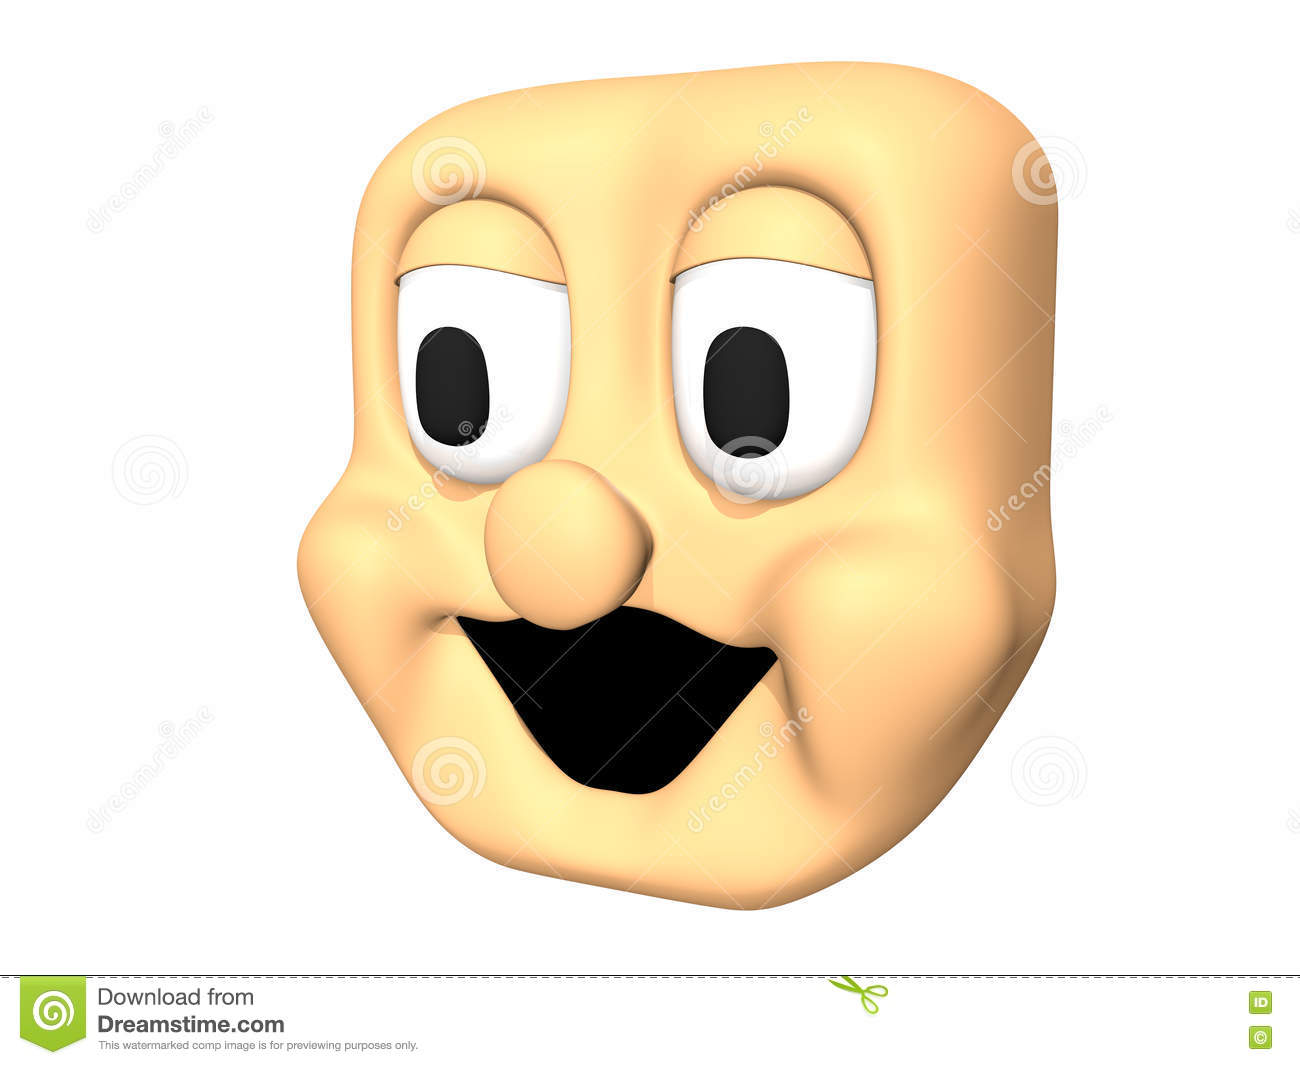 Laughing character clipart clipart royalty free download Funny 3D Laughing Head Icon Of Cartoon Character. Stock ... clipart royalty free download